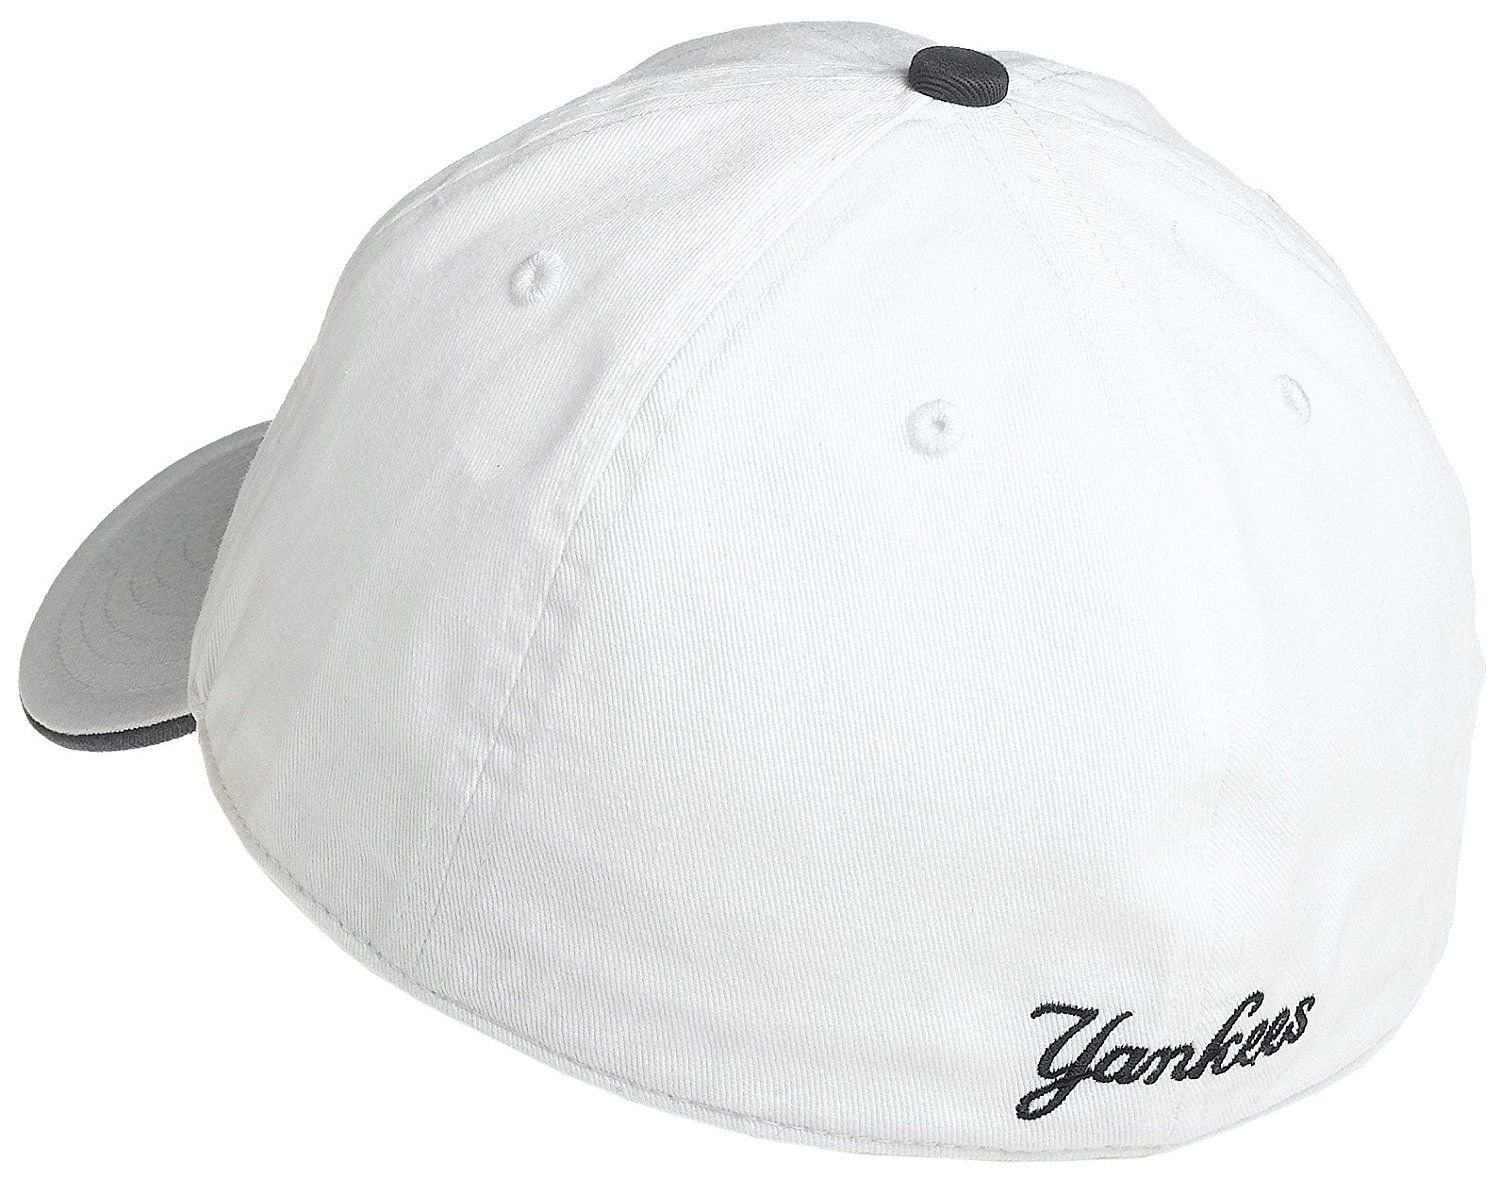 044837cd733 Product Details. MLB Major League Baseball Fitted New York Yankees unisex  hat cap any size M L ...